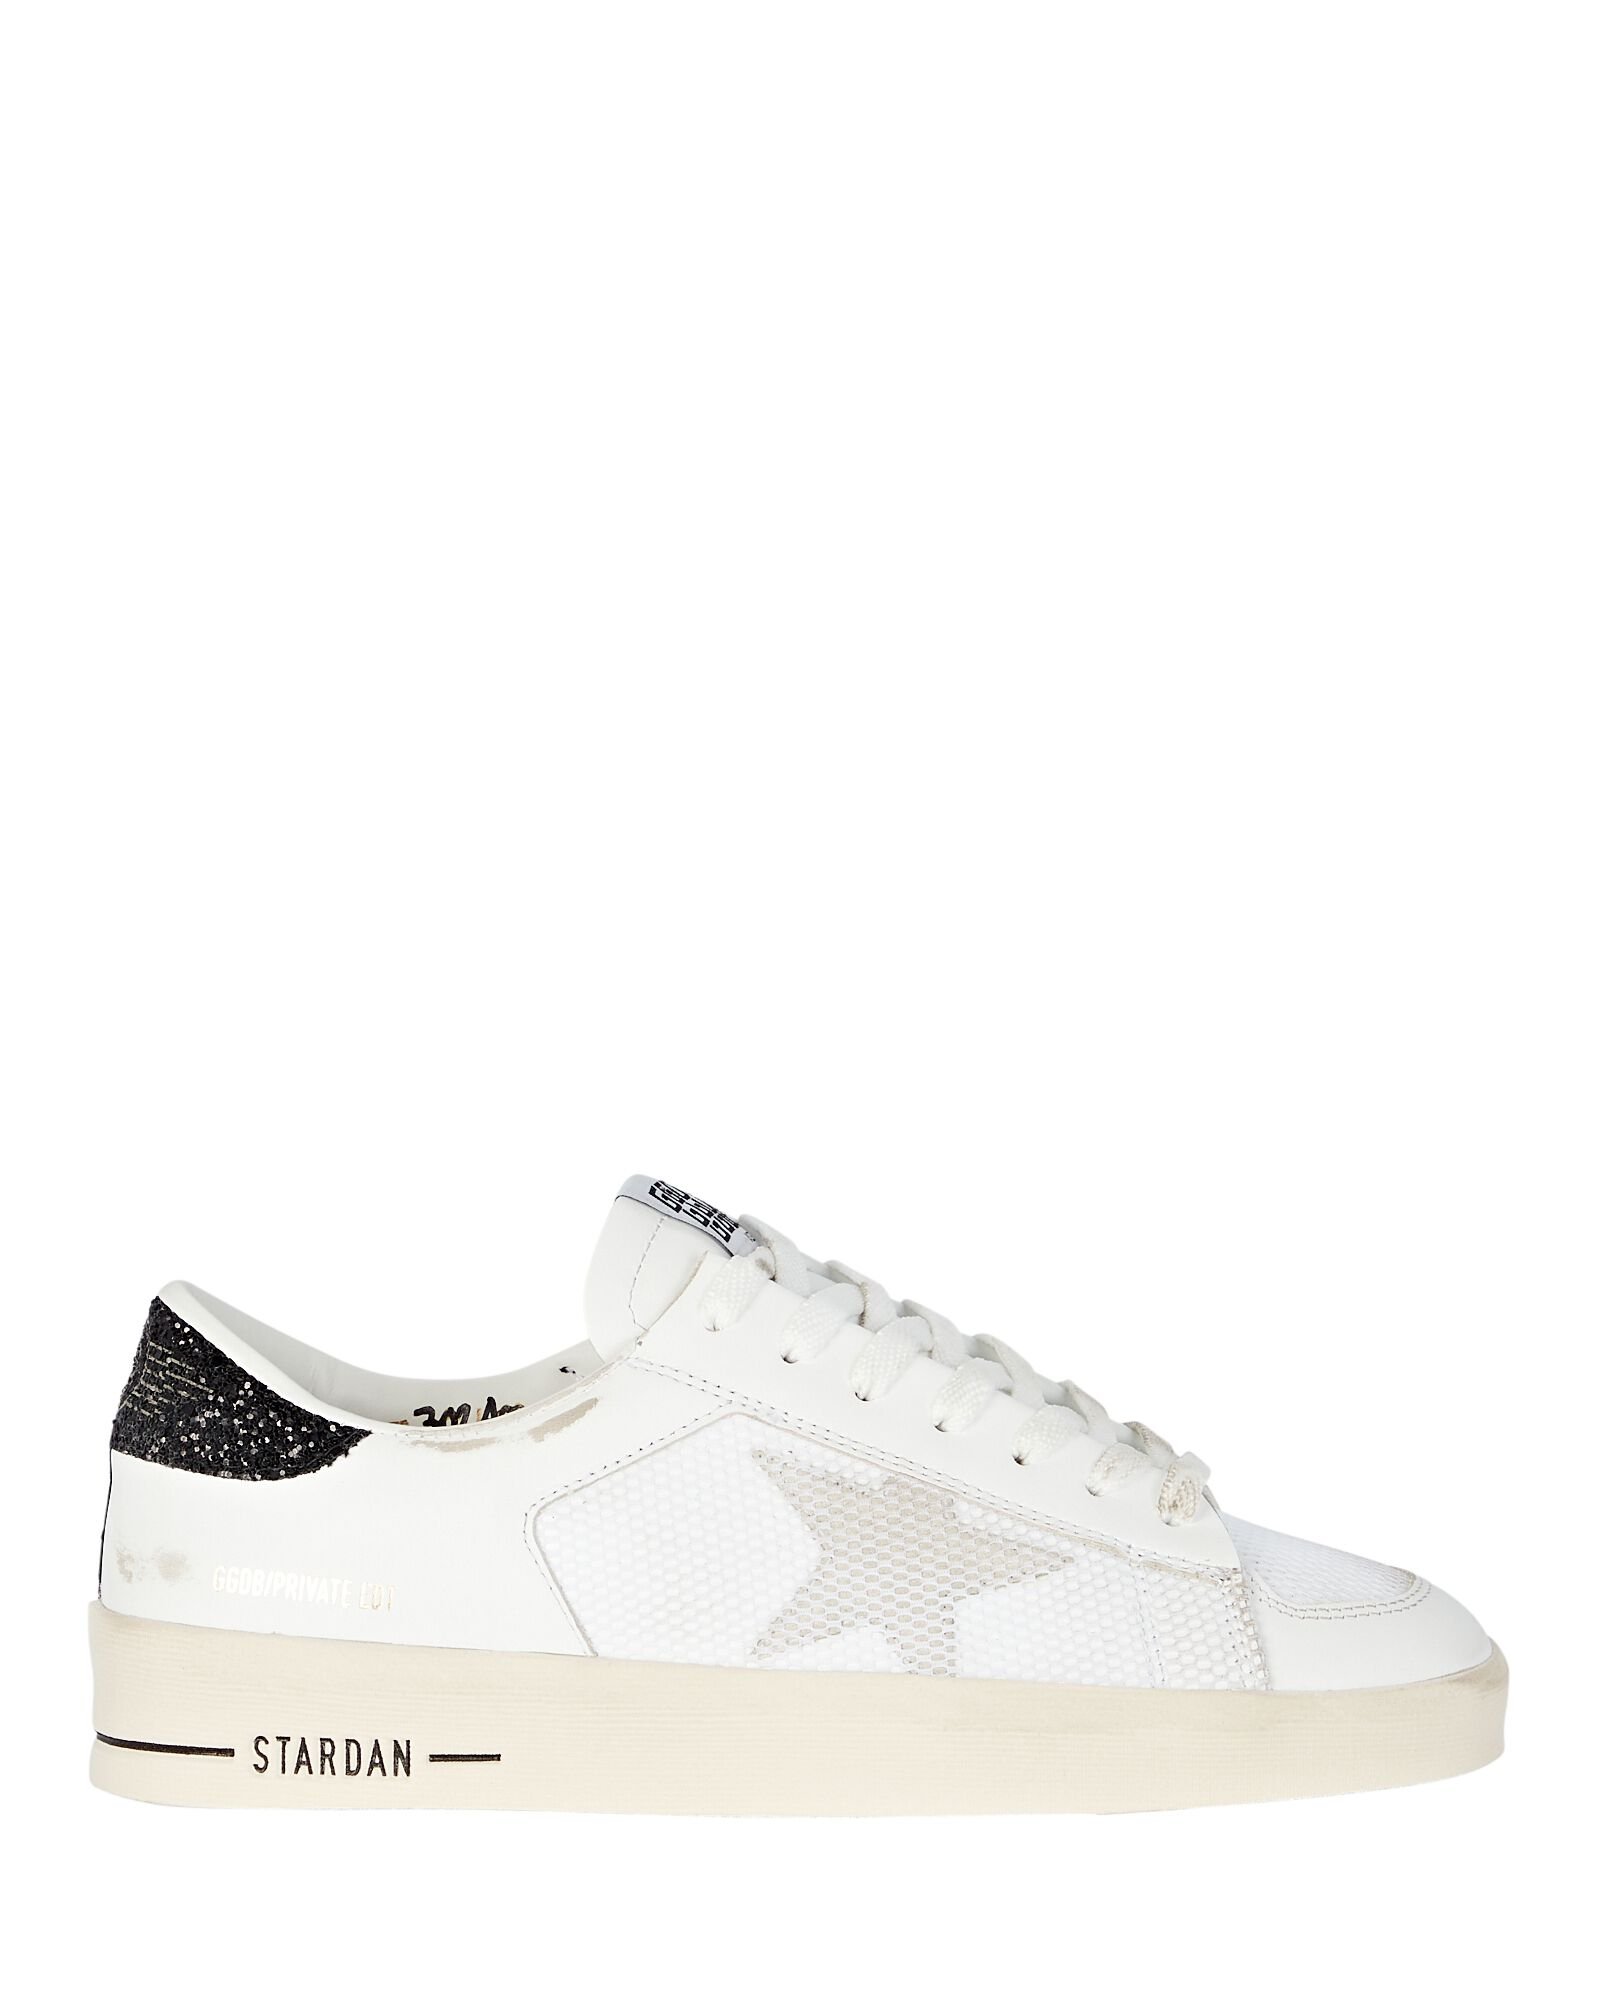 Stardan Leather Low-Top Sneakers, WHITE, hi-res